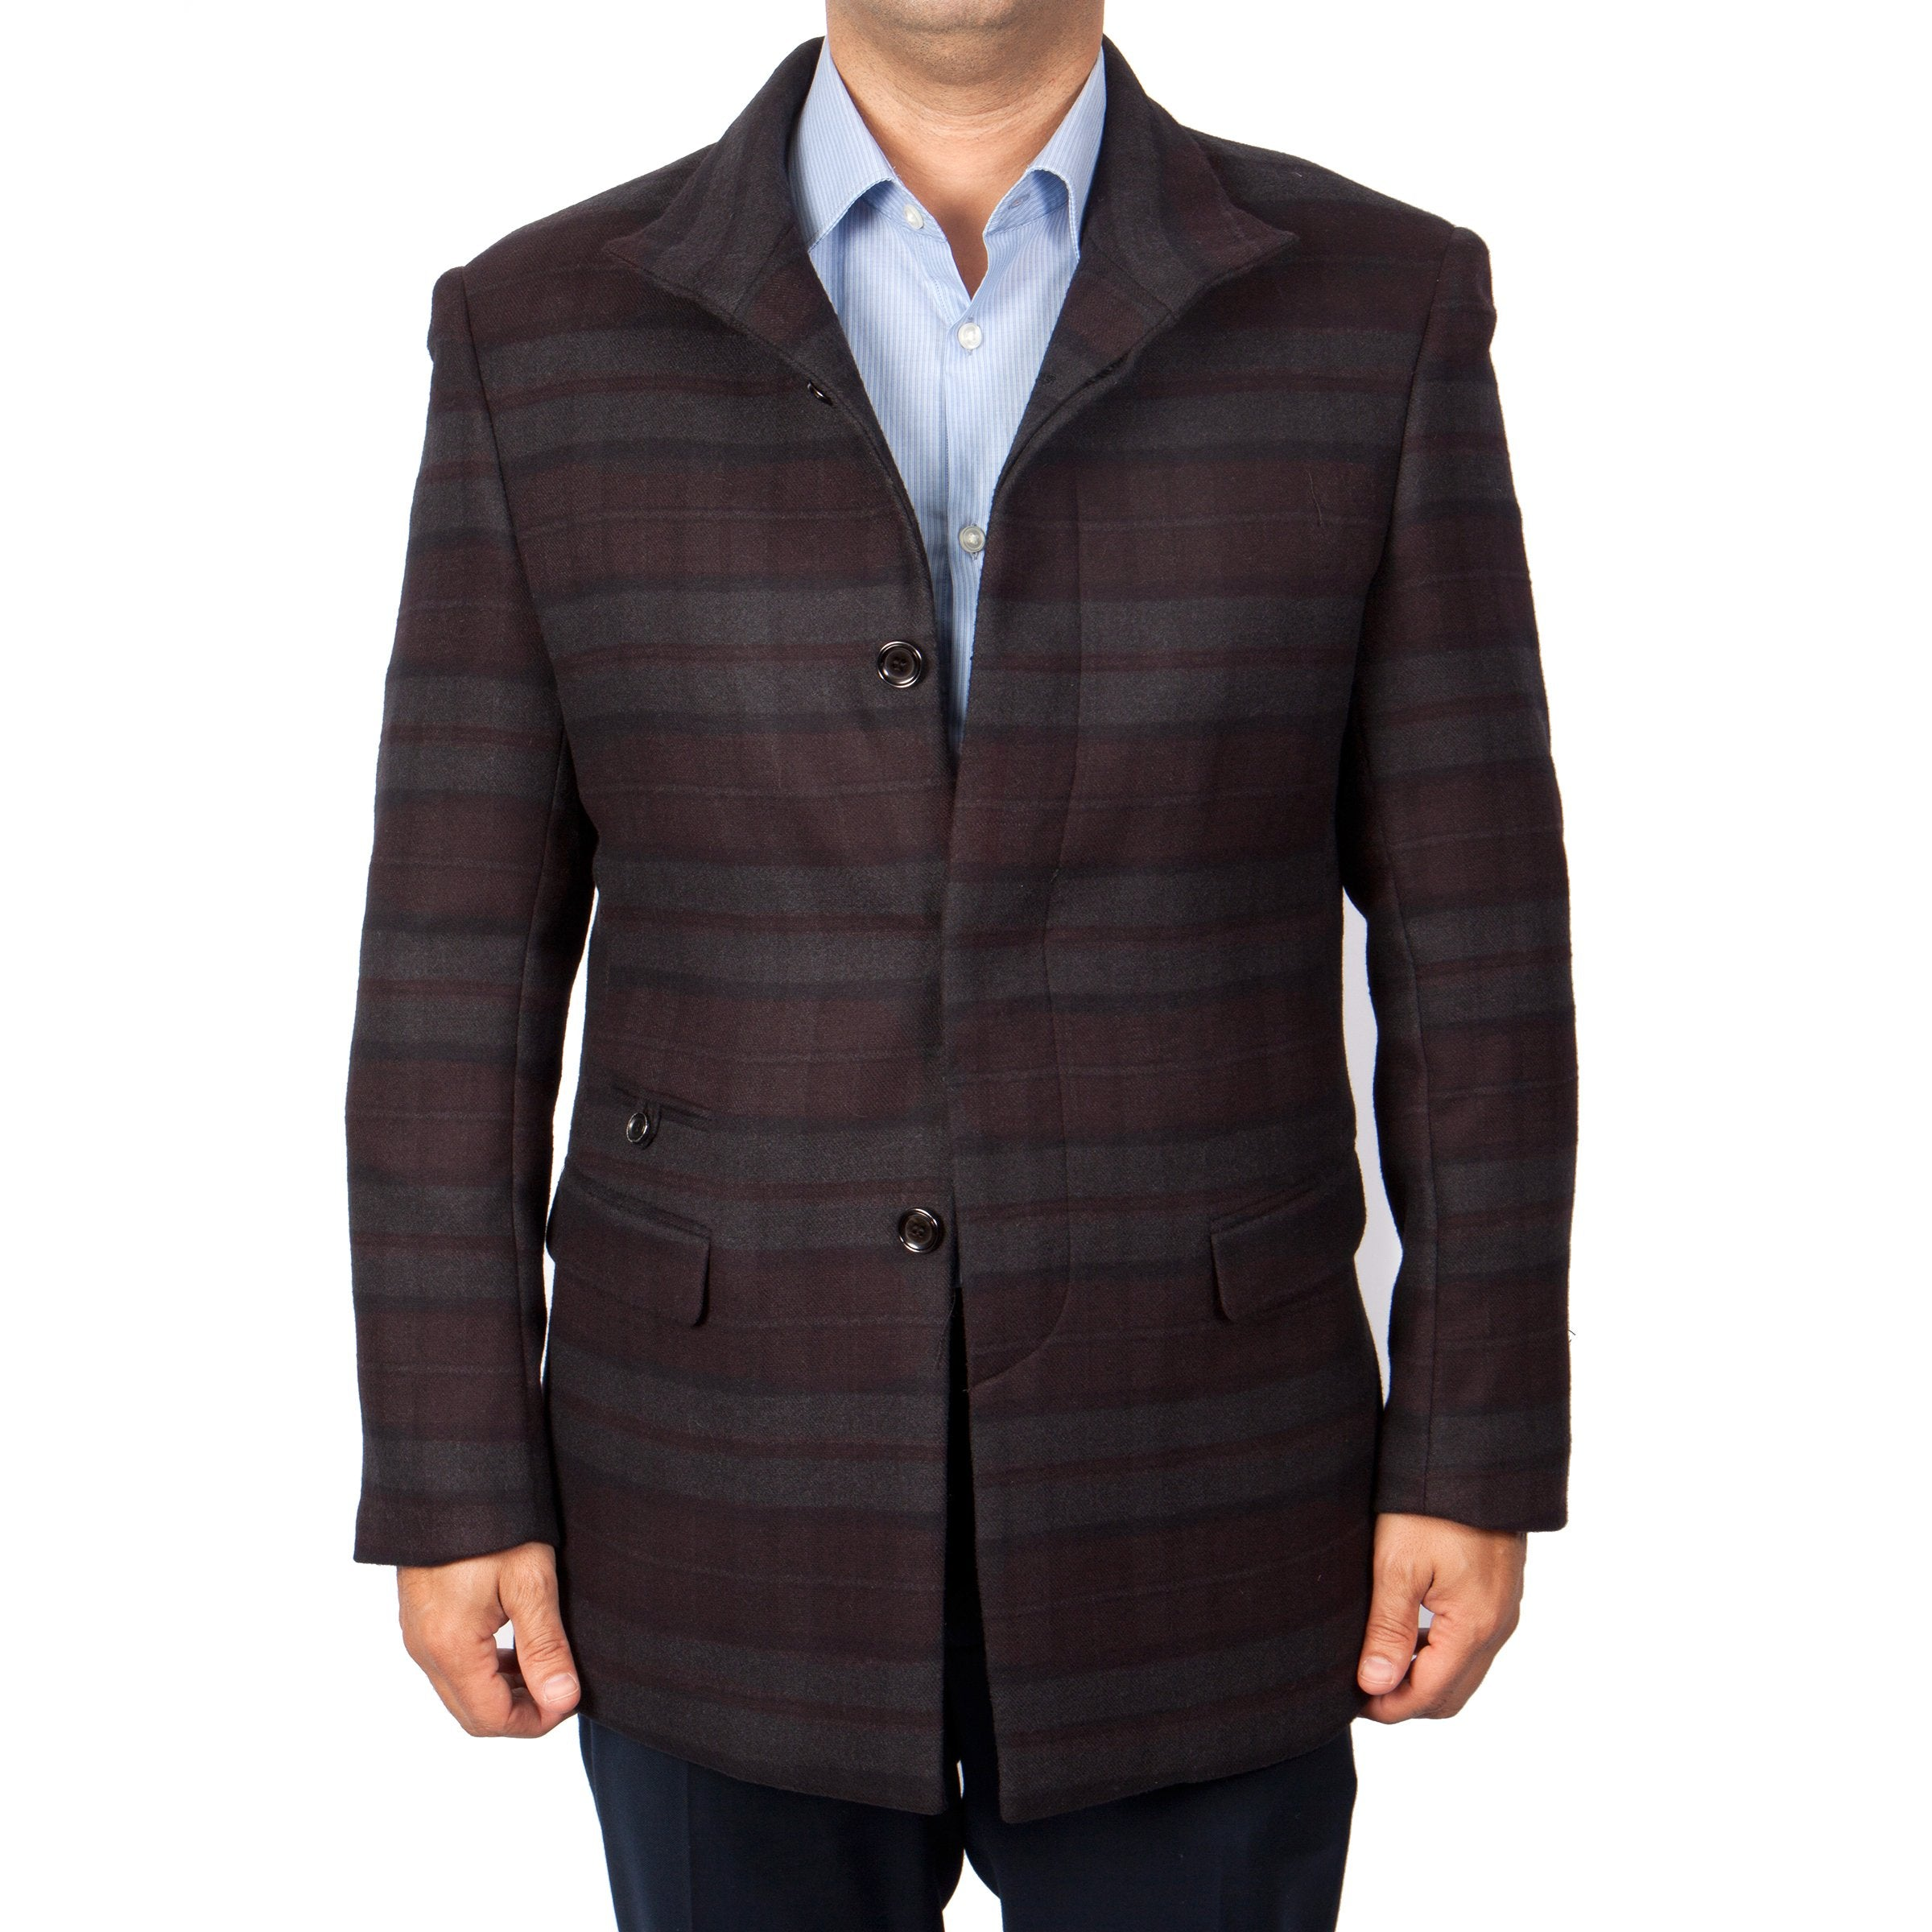 Mens Wool Two Button Madras Pattern Notch Lapel Sports Coat Blazer Jacket